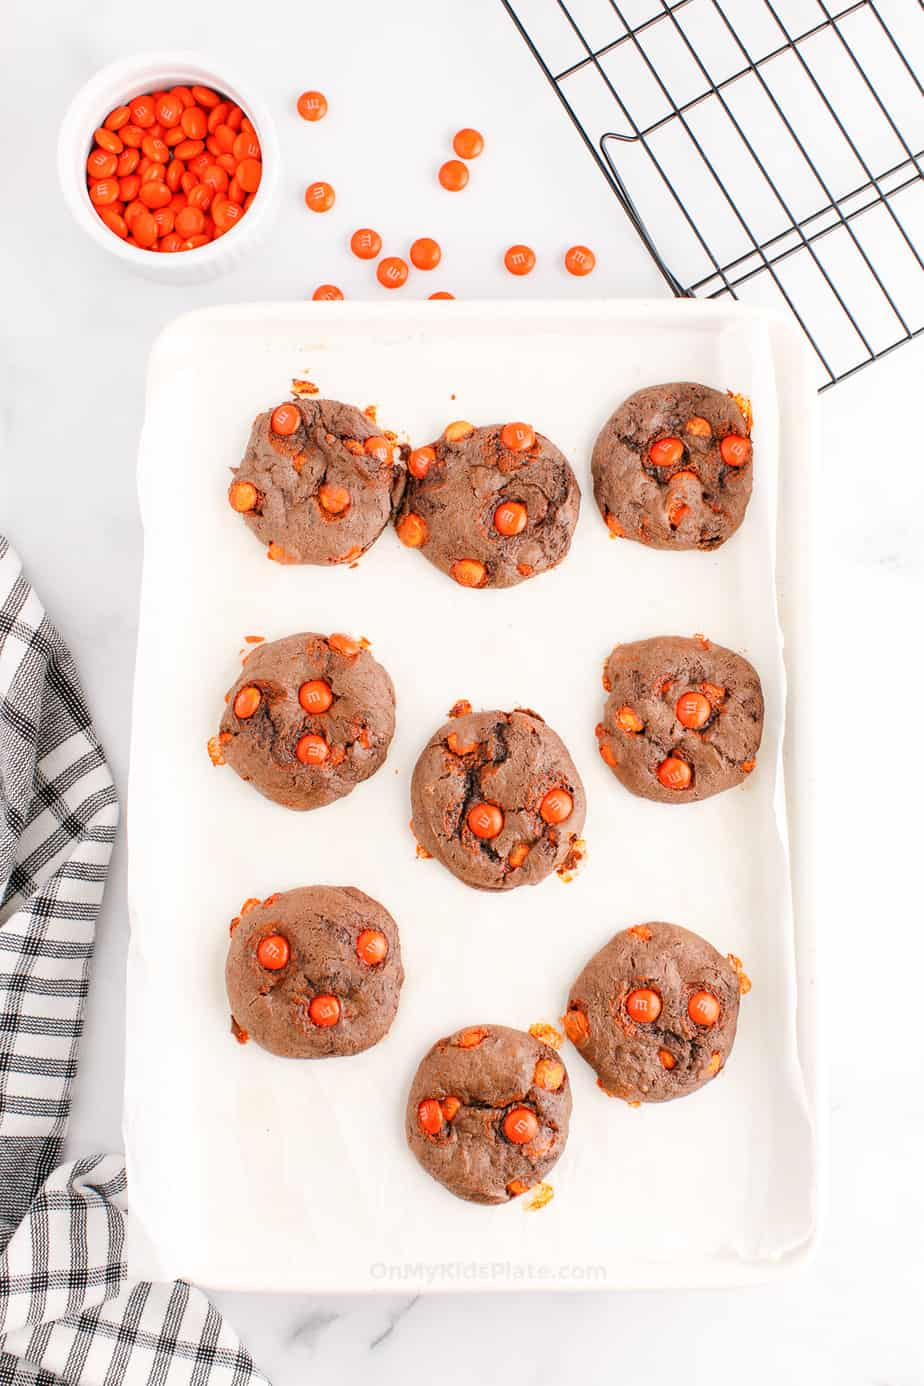 Chocolate cookies with orange candies baked on a pan with a wire rack and more orange candies in a bowl next to the pan